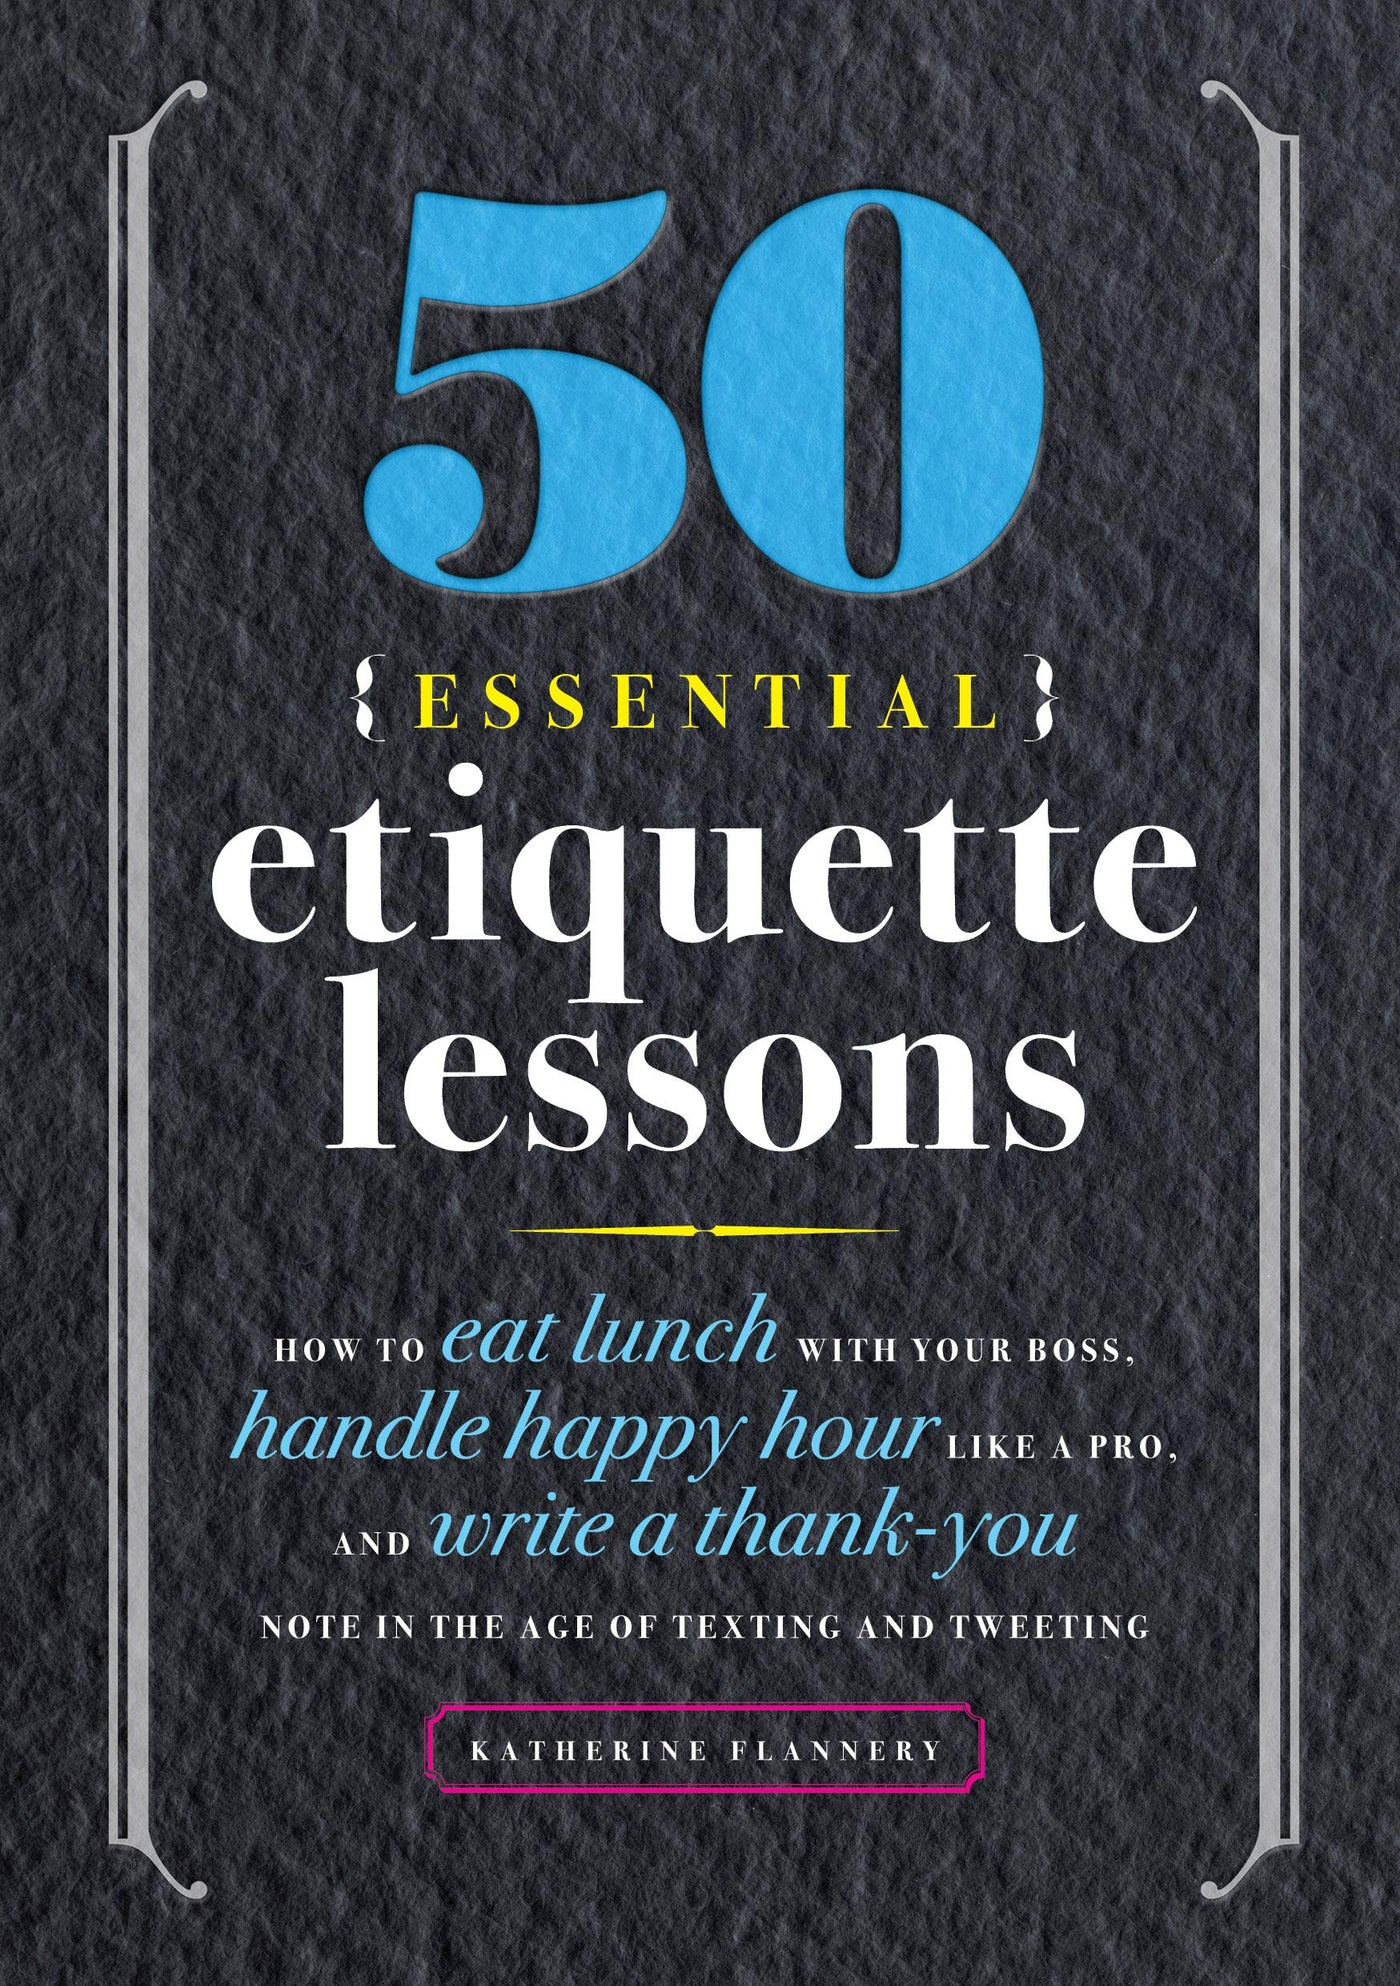 50 Essential Etiquette Lessons by Kathryn Flannery